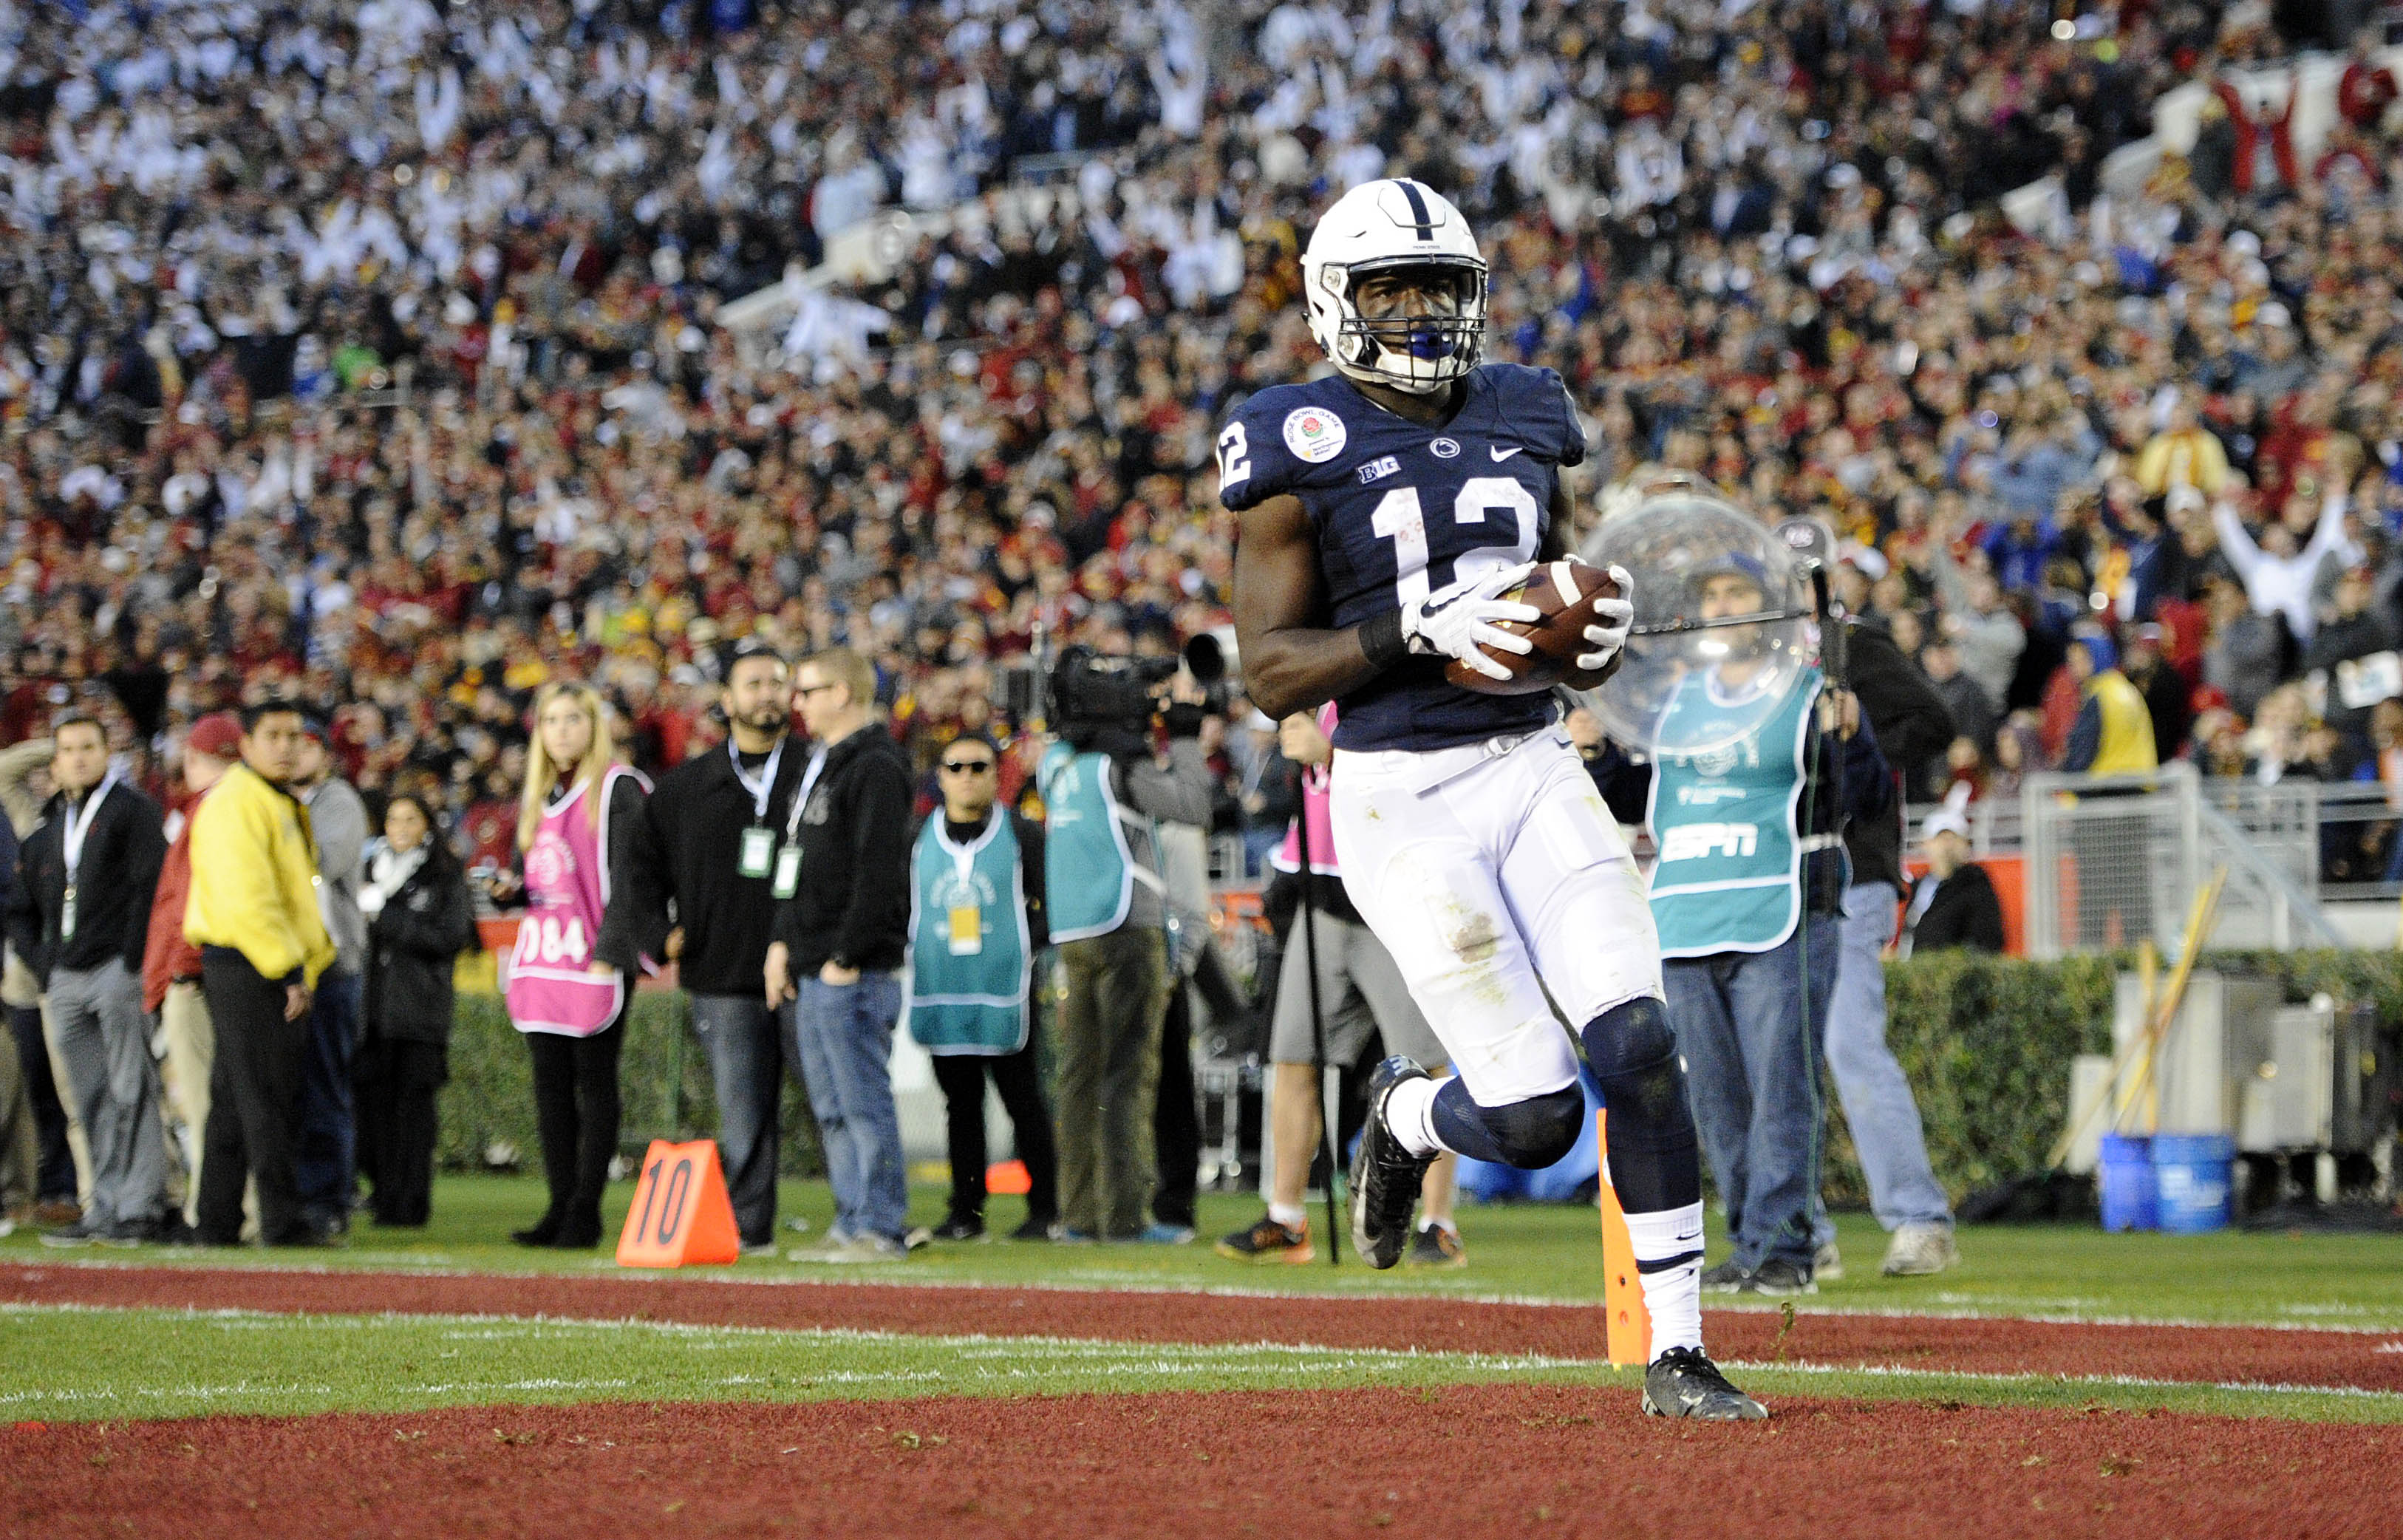 9784834-ncaa-football-rose-bowl-game-penn-state-vs-southern-california